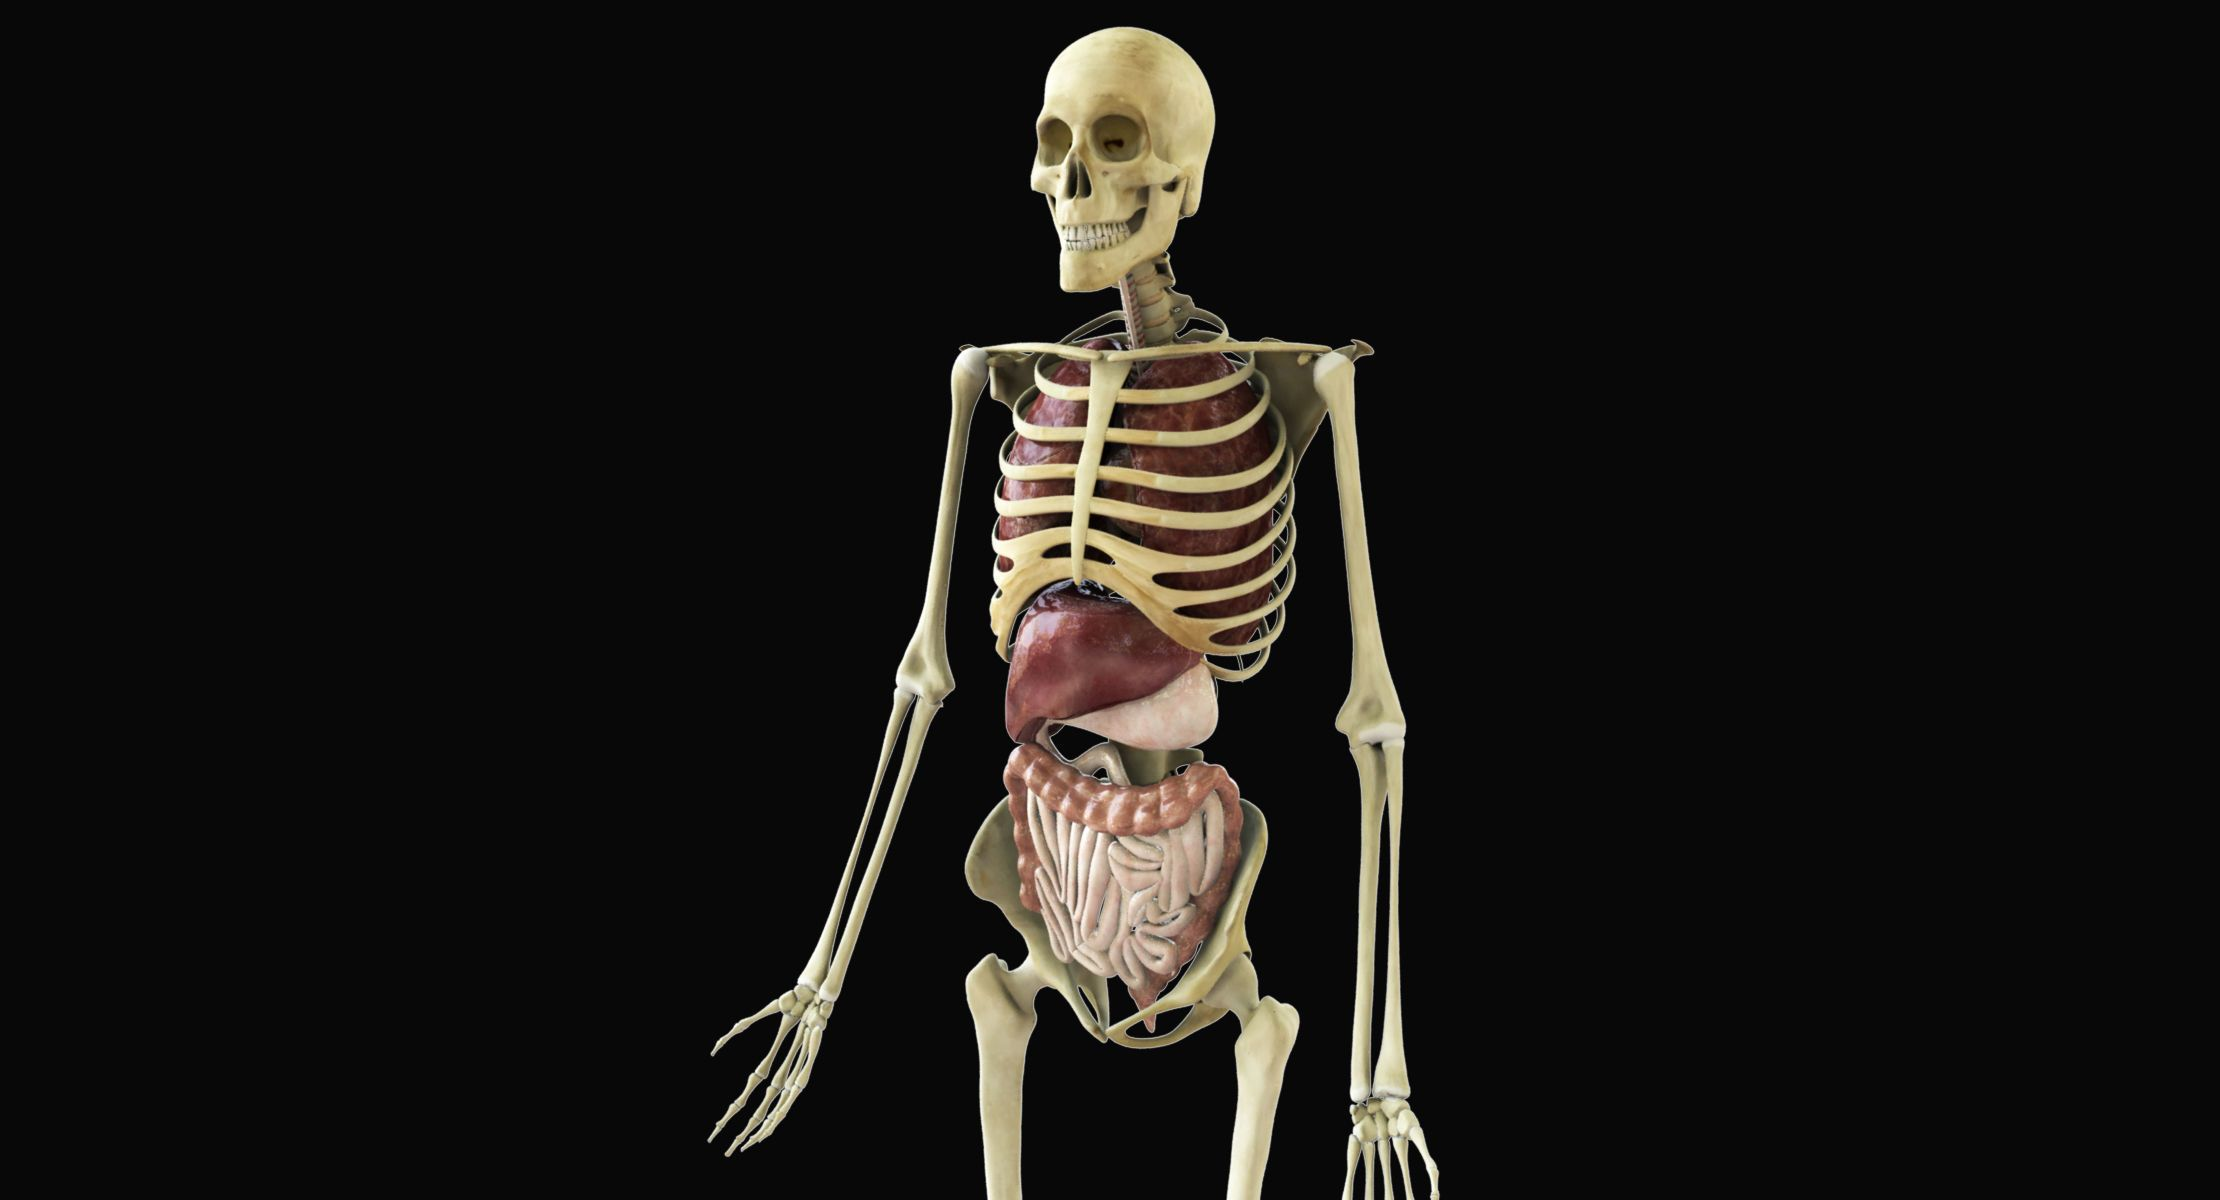 Pin by CGTrader on 3D Characters in 2019 | Human skeleton